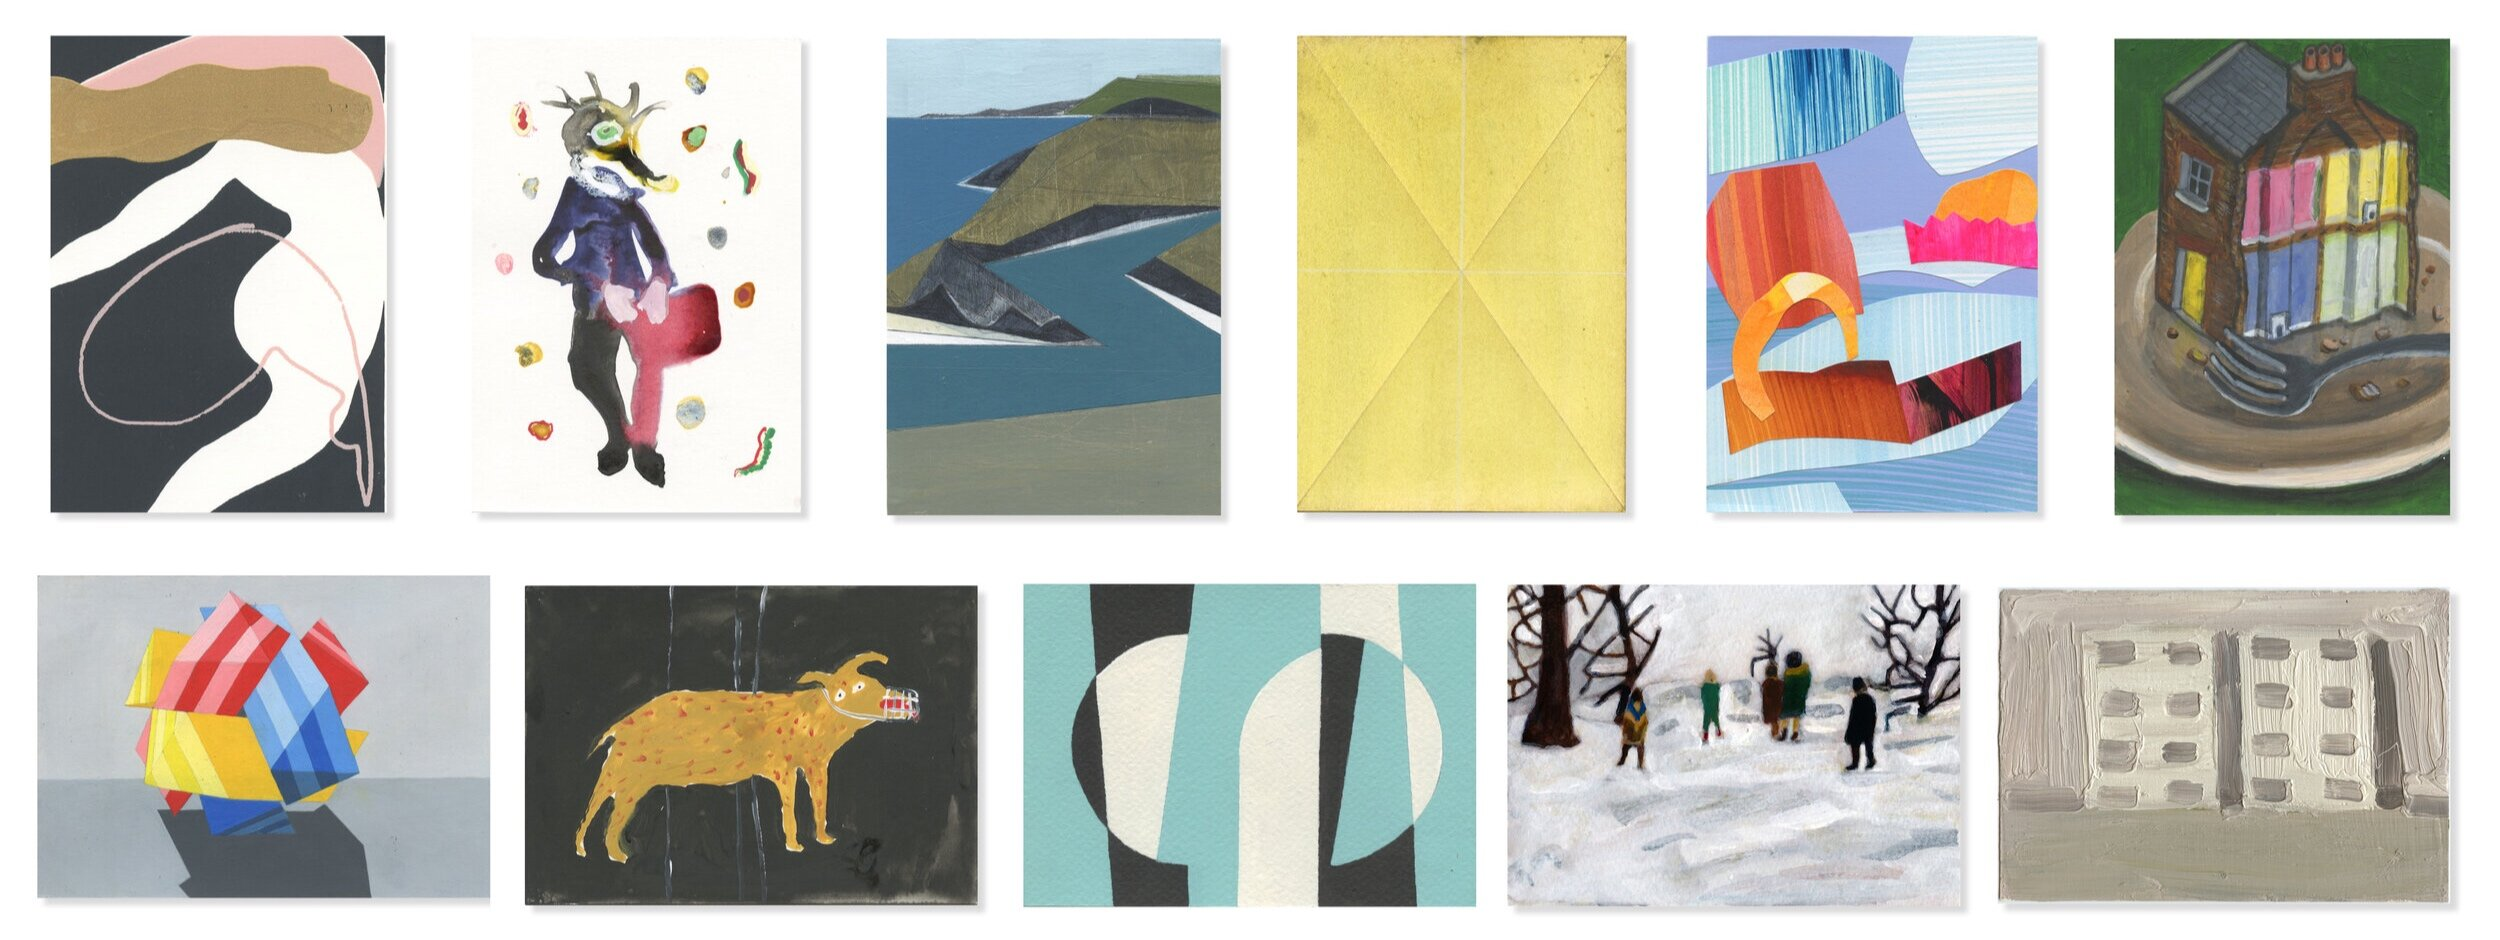 Top row: Lot 99 - 'Dancer', Lot 82 - 'The Meeting 4', Lot 160 - 'Vertical Coast', Lot 61 - 'Yellow with White (Folded/Scored)', Lot 21 - 'Owning the Sky', Lot 210 - 'Demolition'    Bottom row: Lot 24 - 'Christmas Too', Lot 1 - 'Bad Dog', Lot 54 - 'Transience', Lot 85 - 'Winter Walk', Lot 16 - 'Pills Blister Pack Vertical'